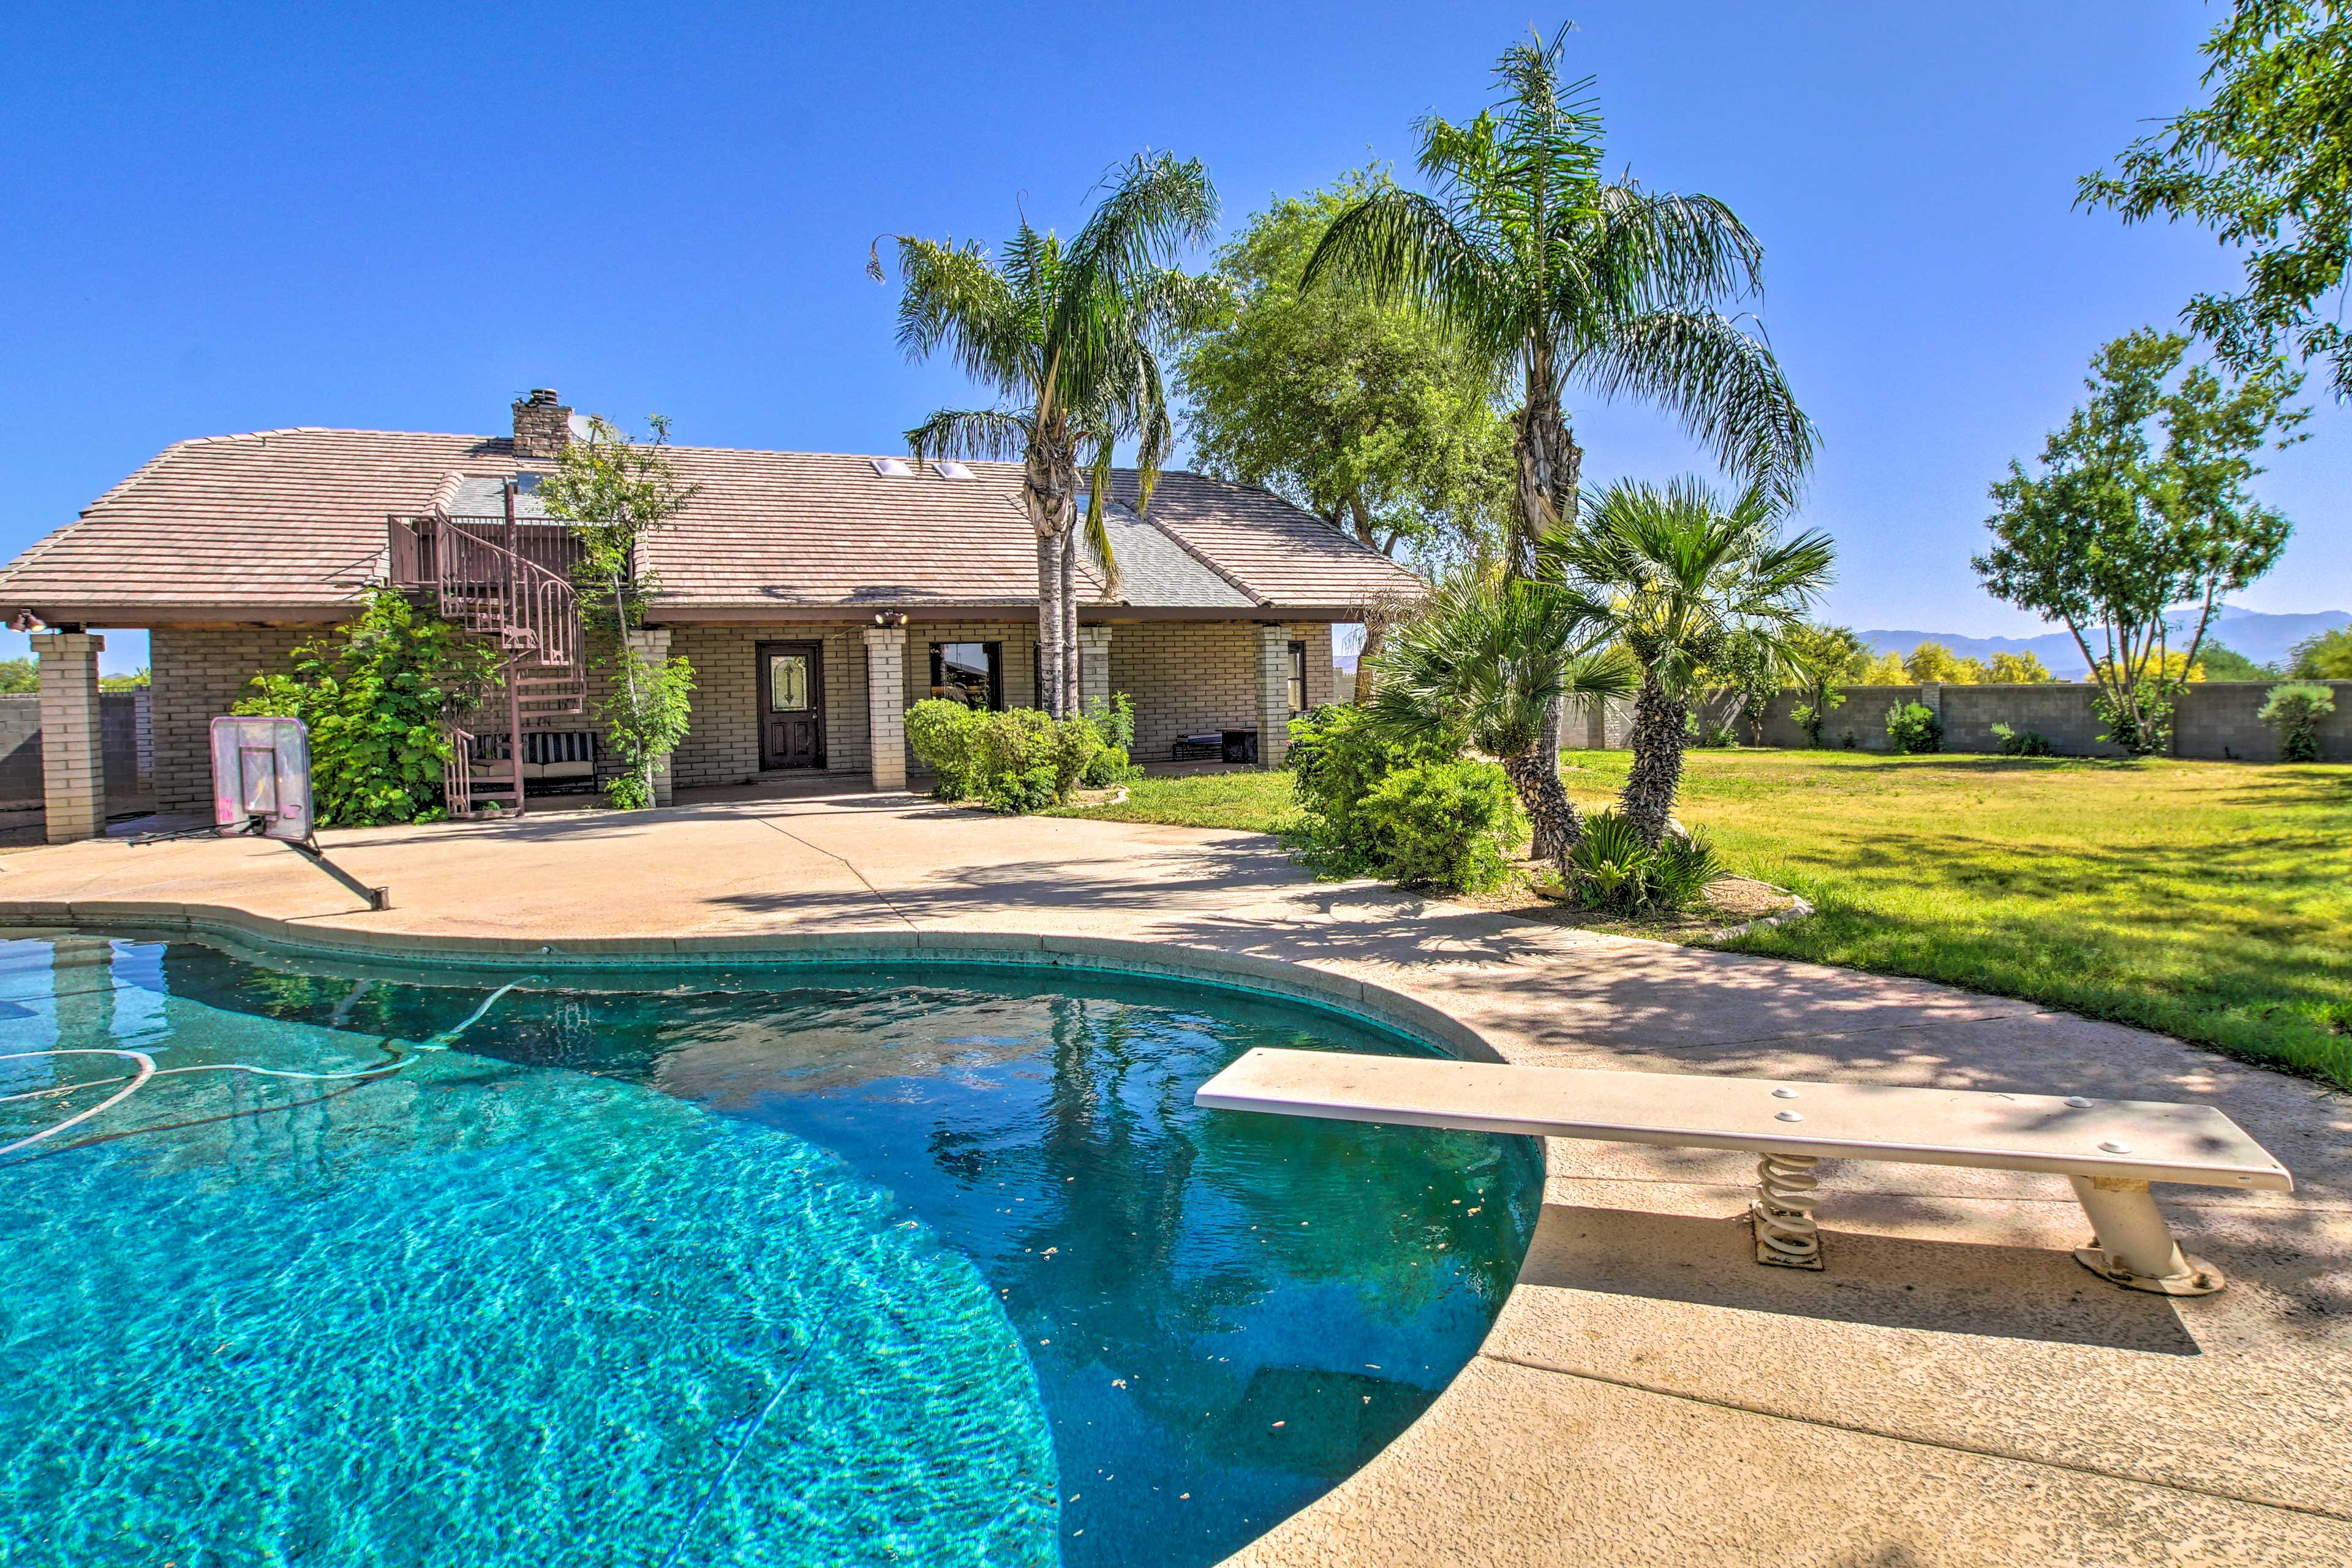 Book this Scottsdale paradise for a fun-filled, sunny retreat!